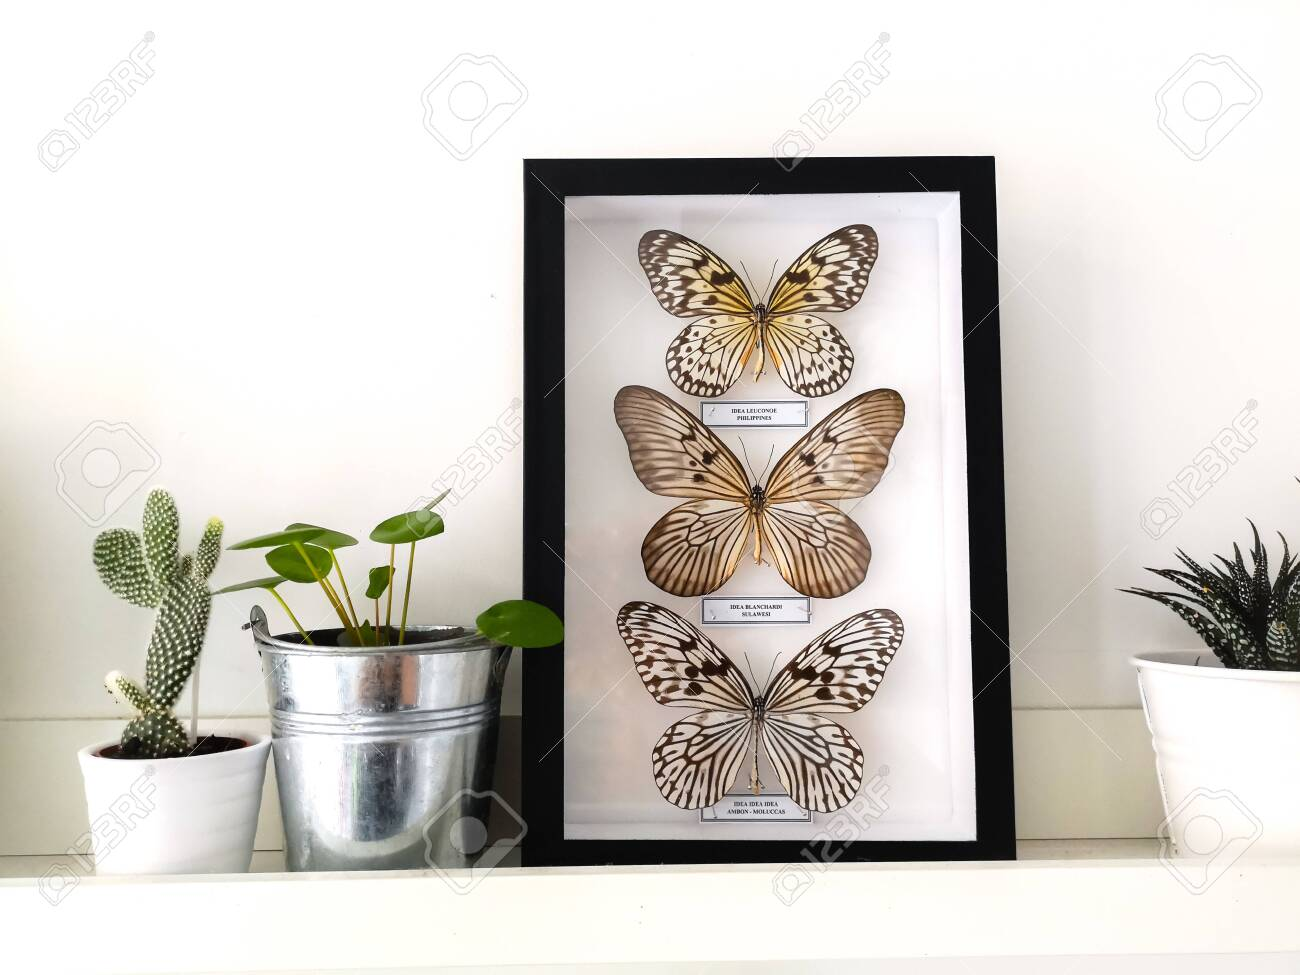 White floating shelf with framed taxidermy butterflies display and small houseplants in a black and white interior - 127147158